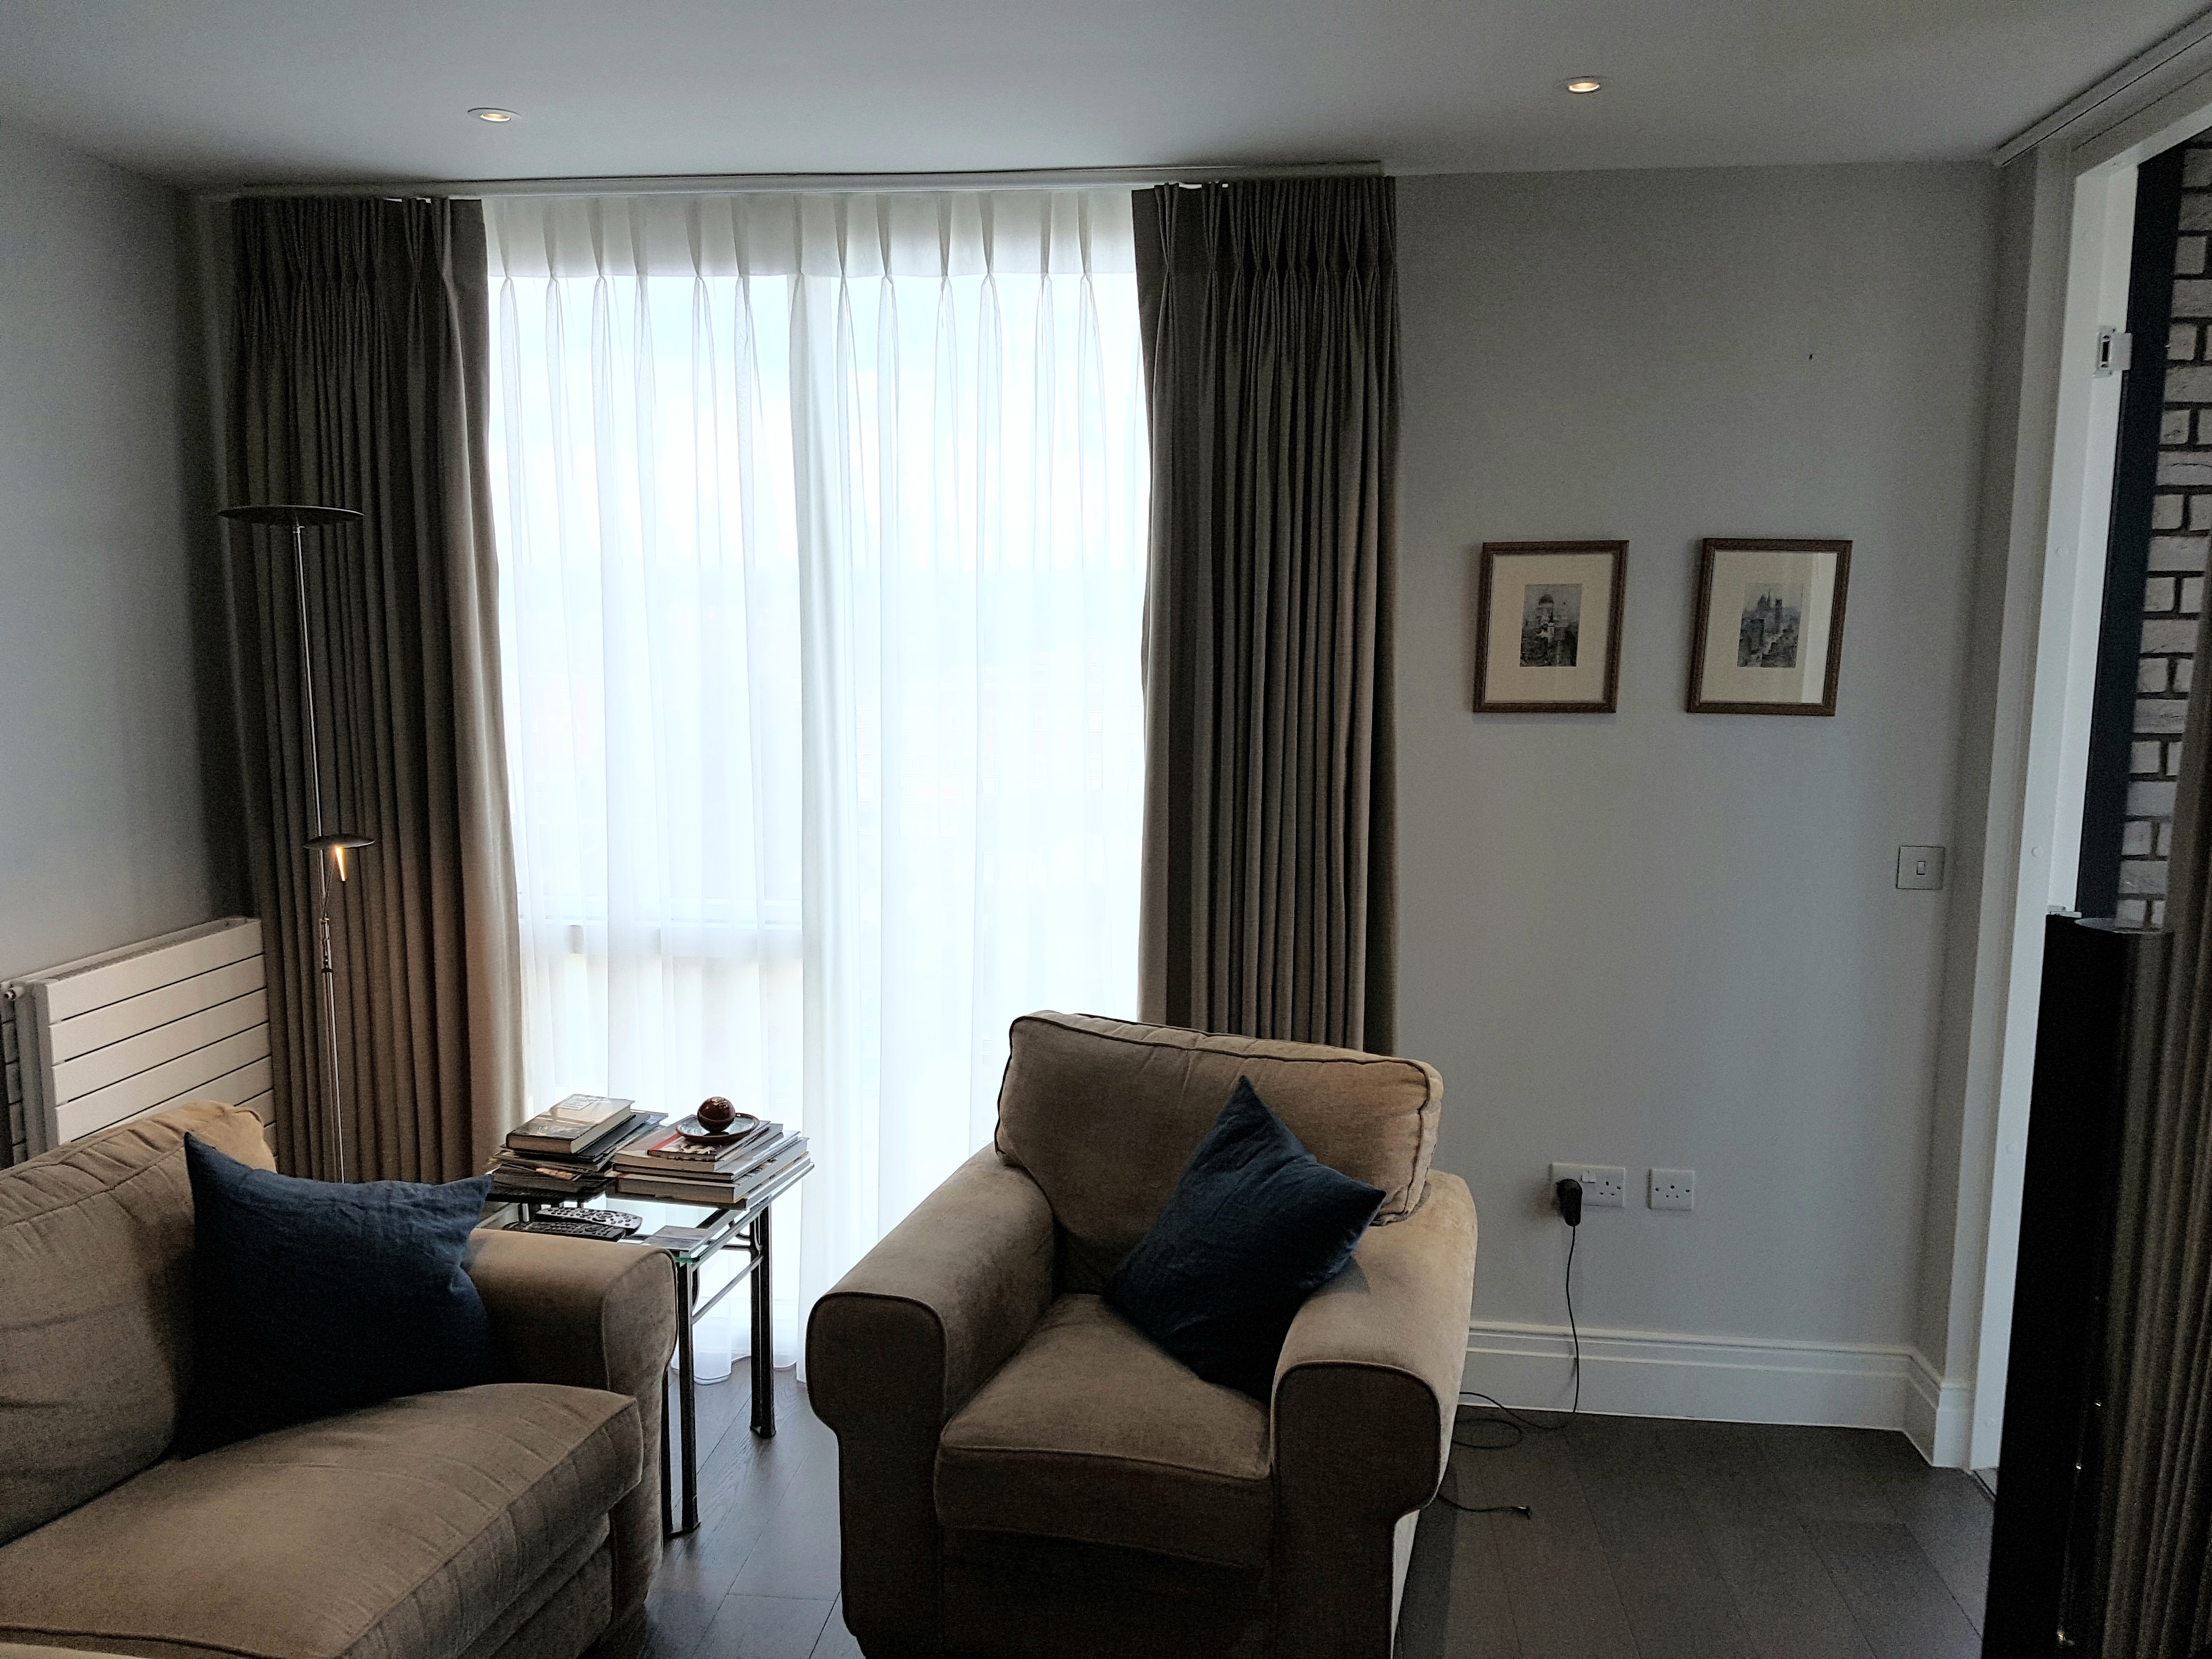 bespoke, made to measure curtains and sheers installed by OTRT curtain fitter in Kingston